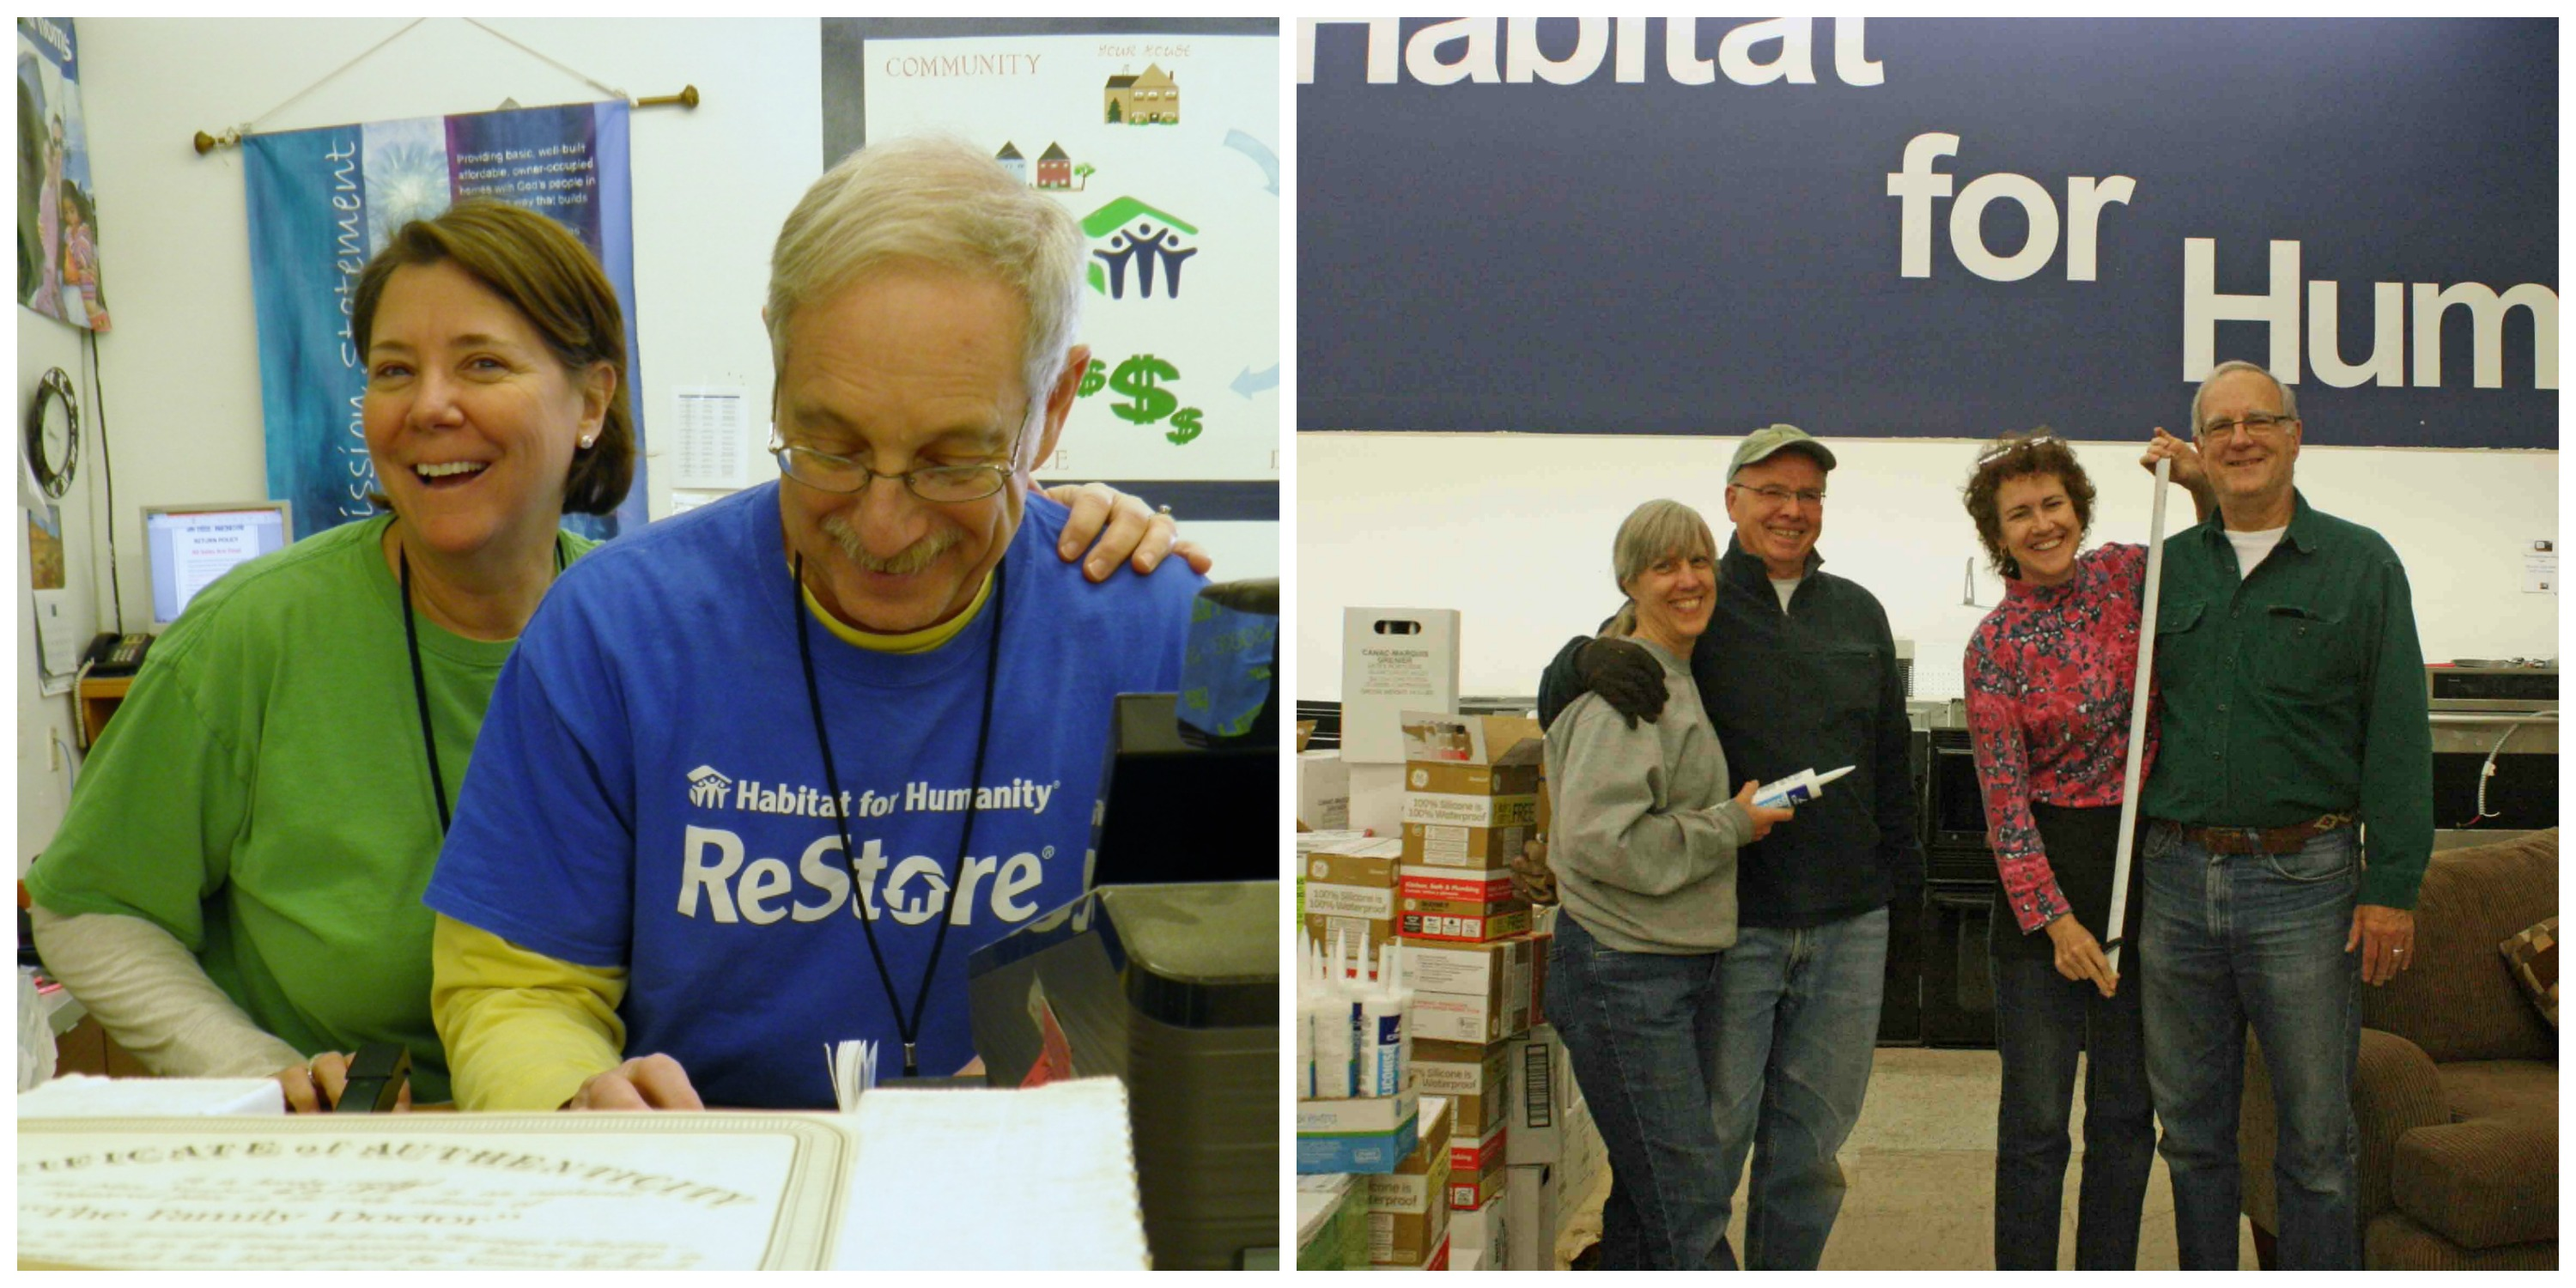 Restore Donations Habitat For Humanity Chester County ReStores - Habitat for Humanity Chester County